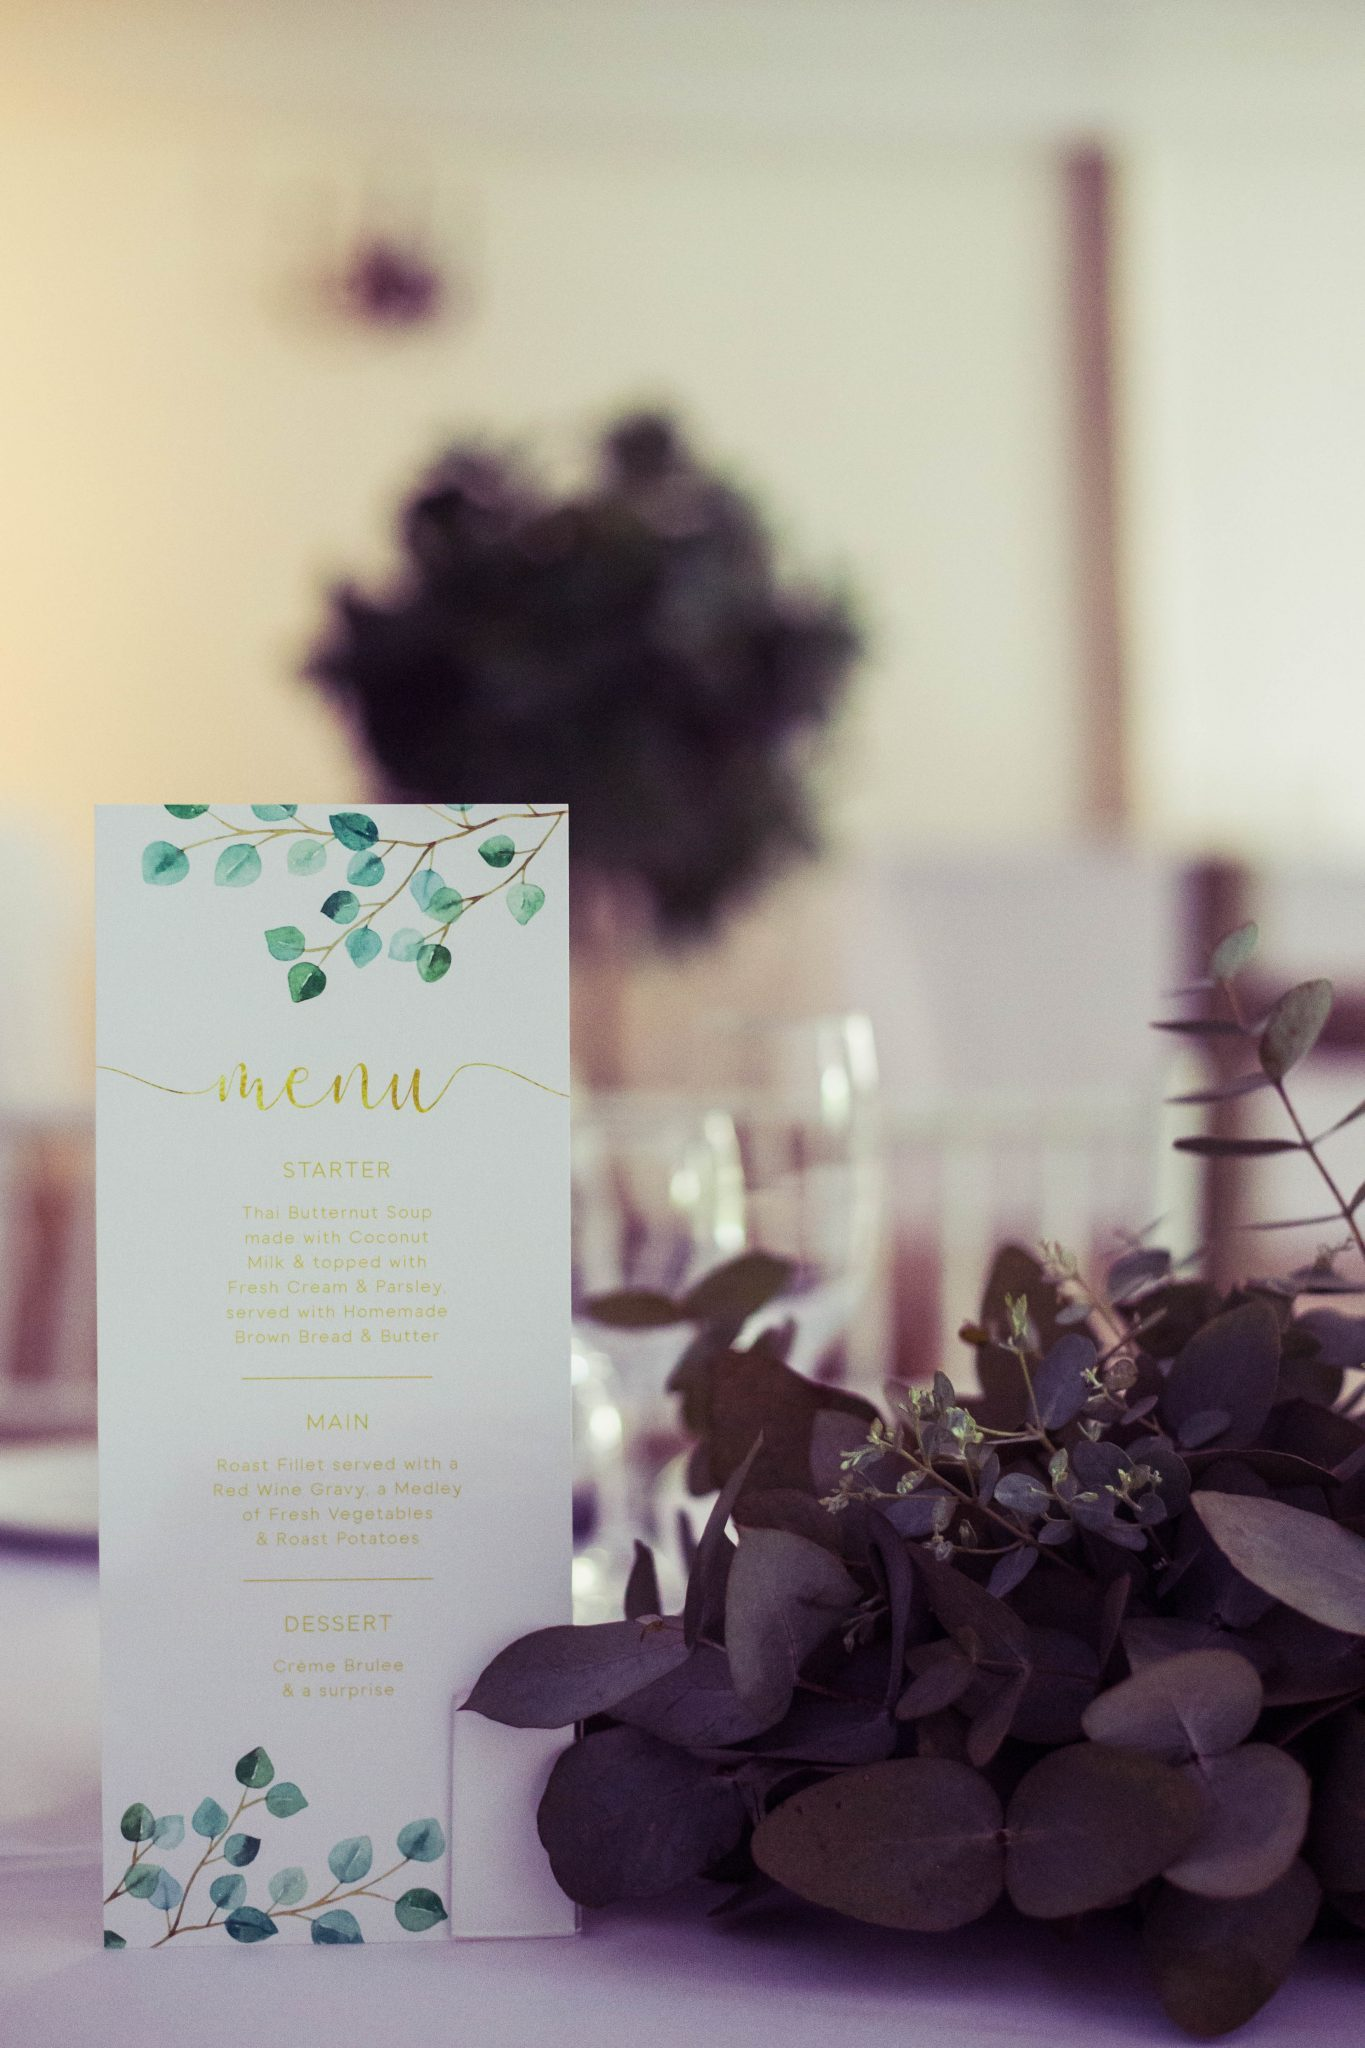 Our Wedding: The Event Details